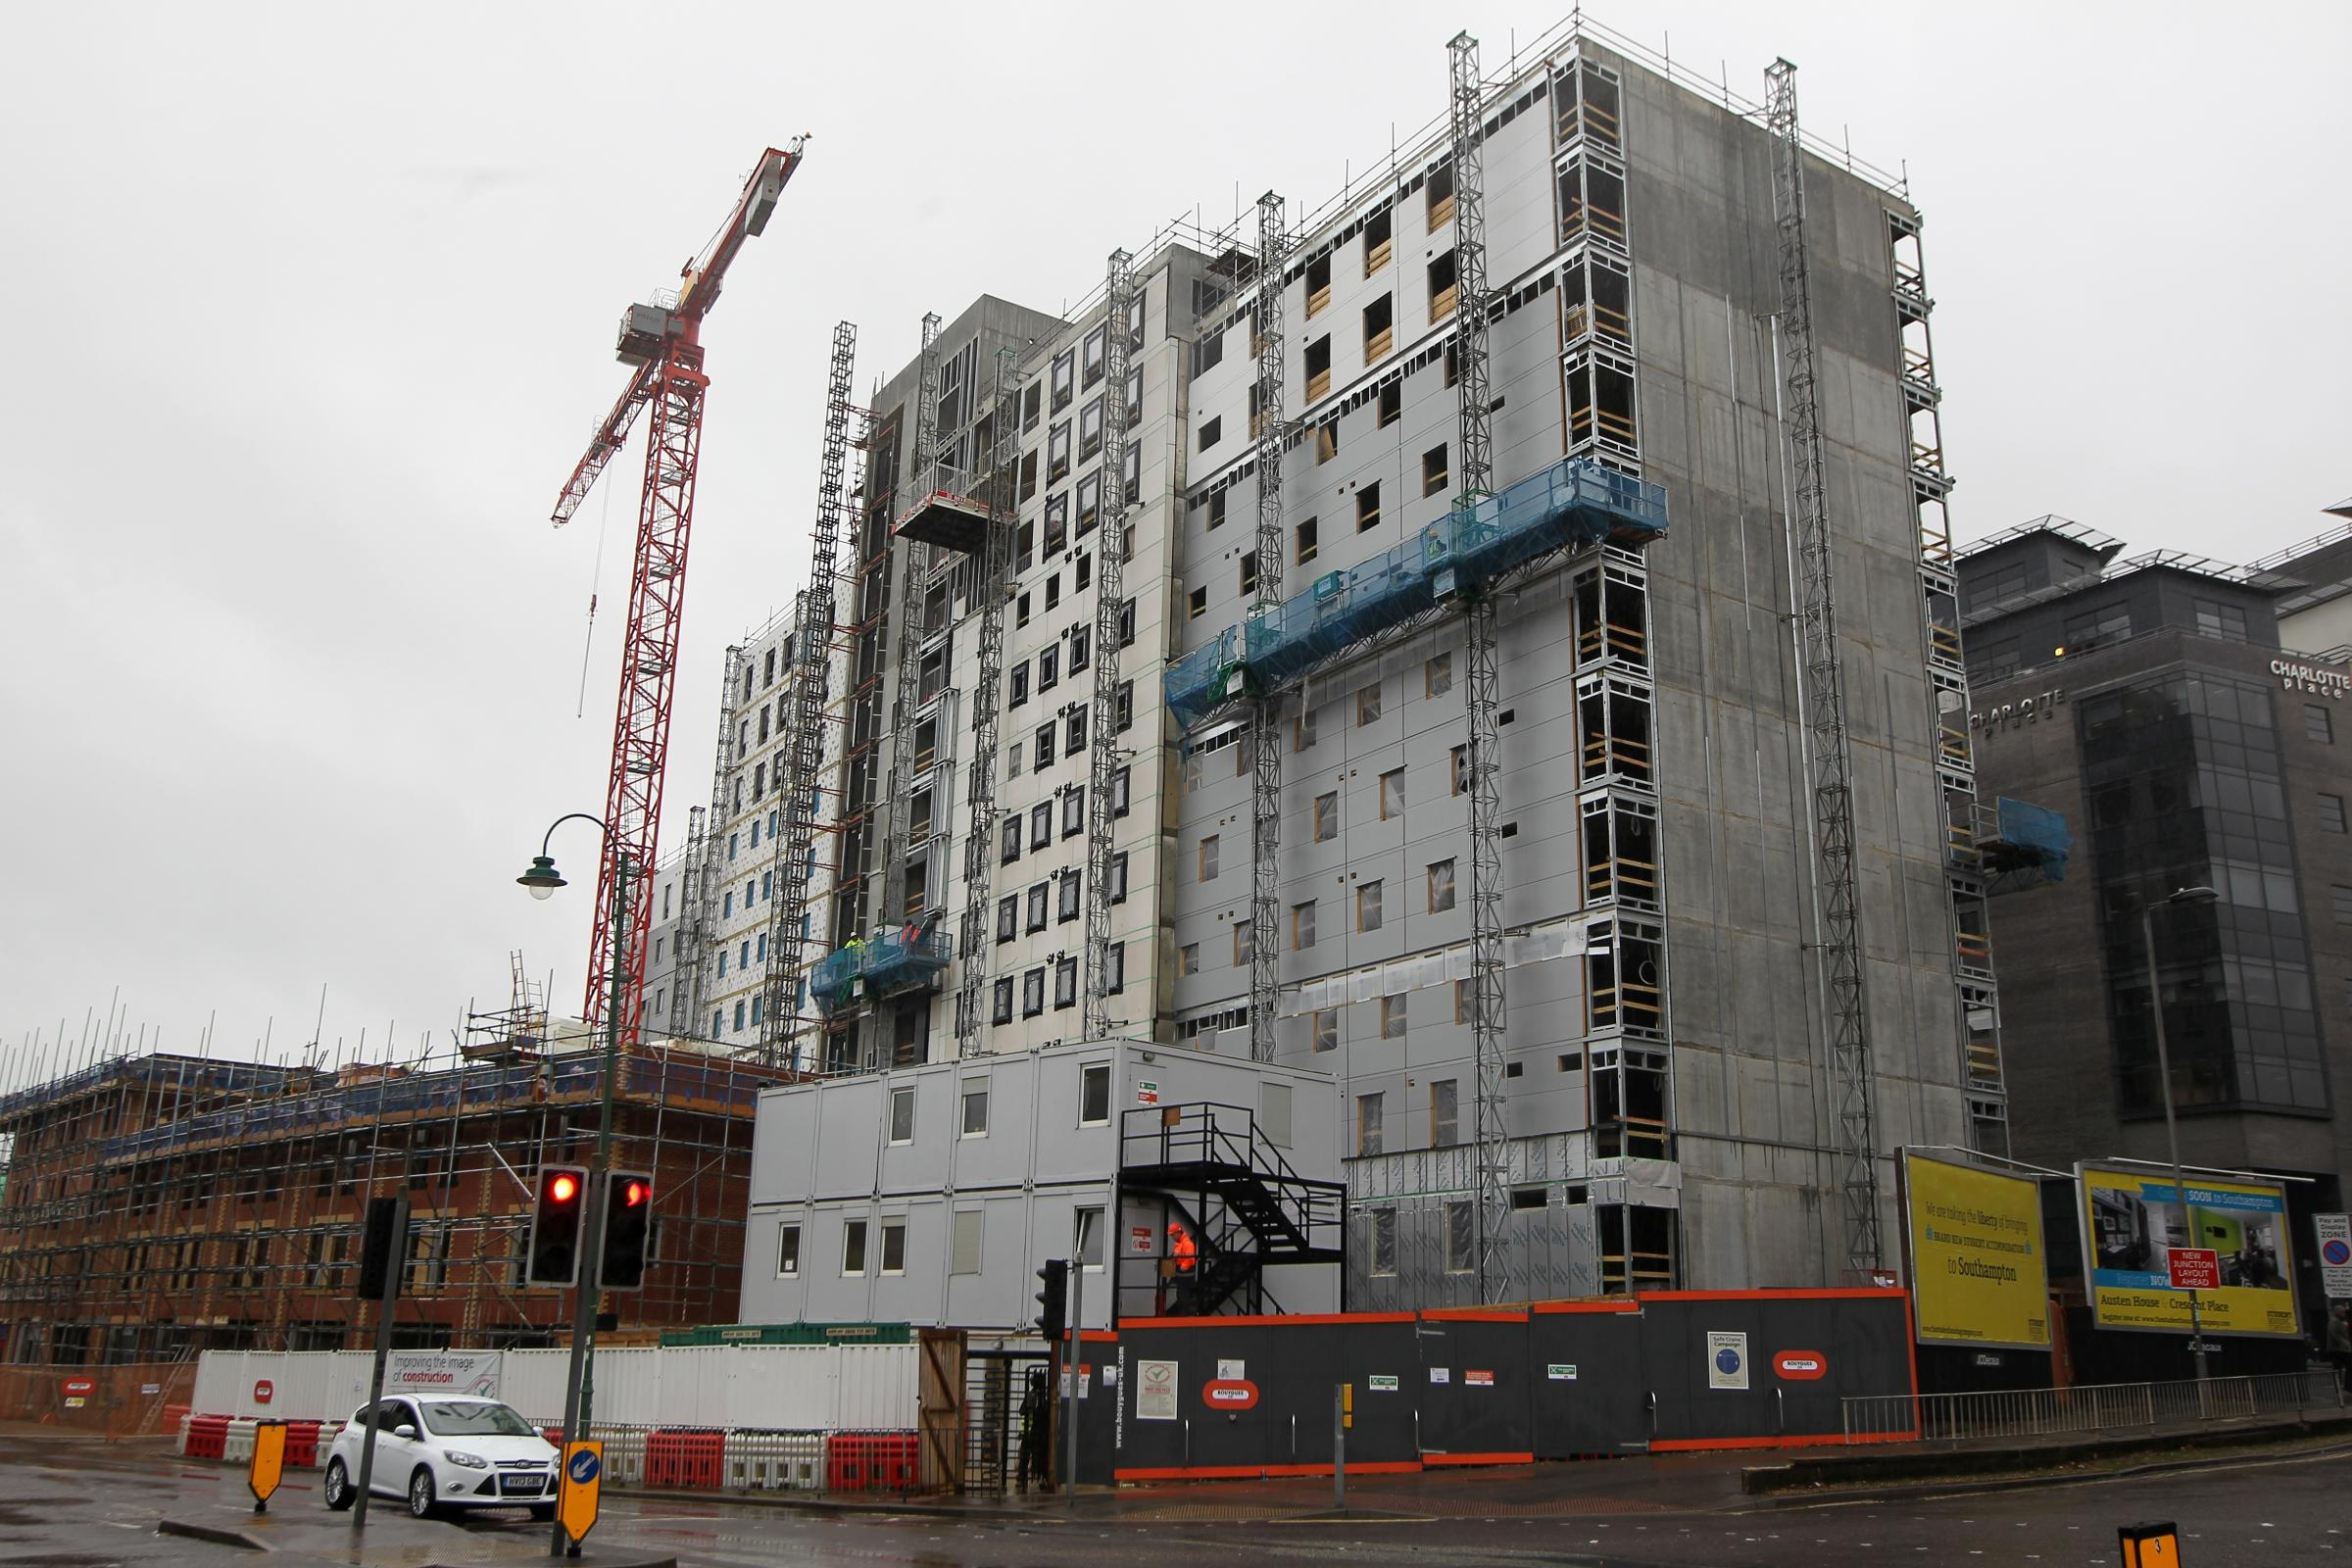 Student flats being built in Southampton